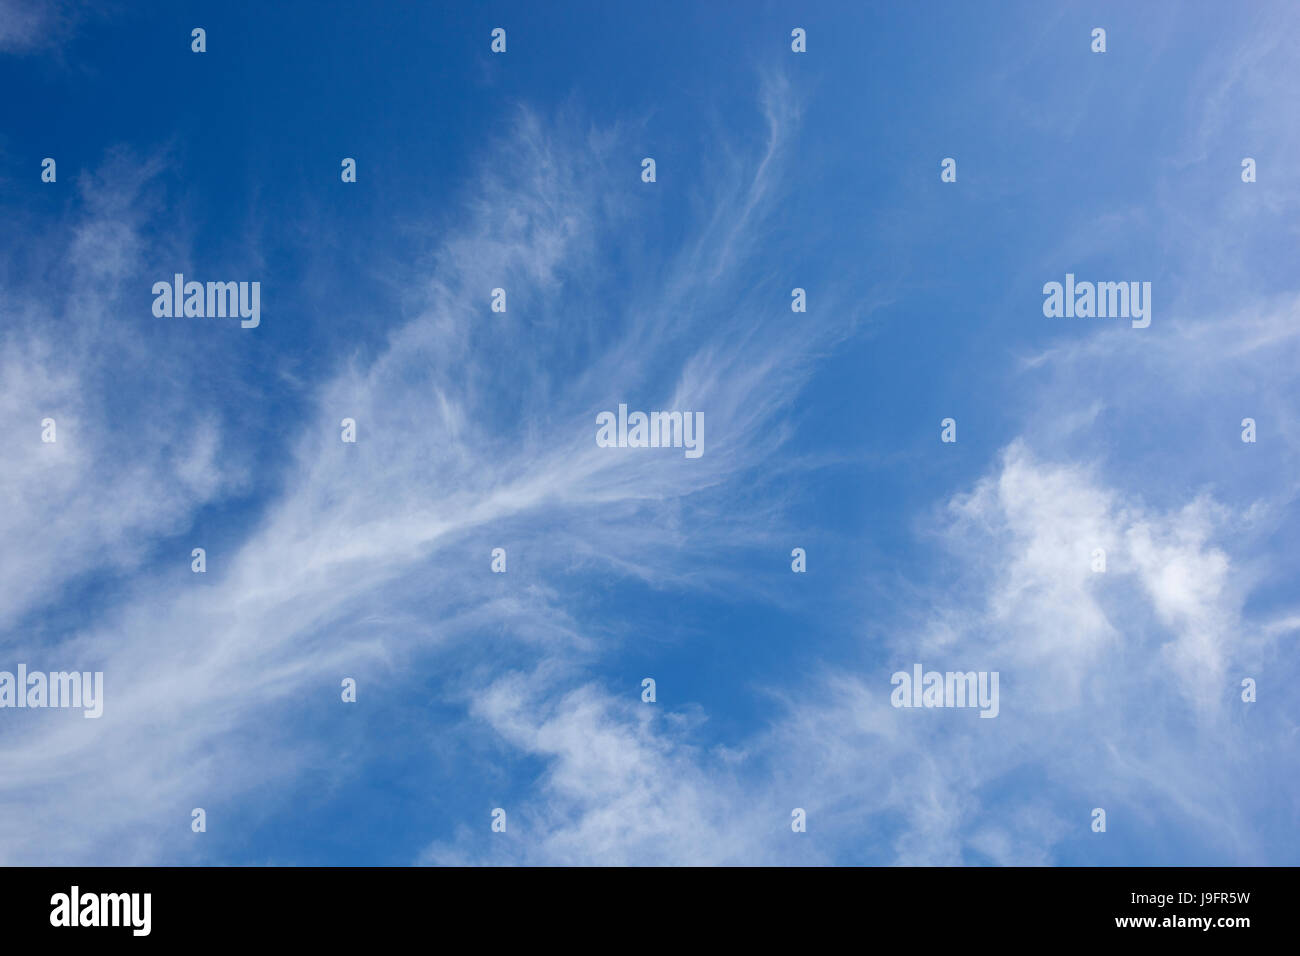 a blue sky background with white wispy cloud - Stock Image